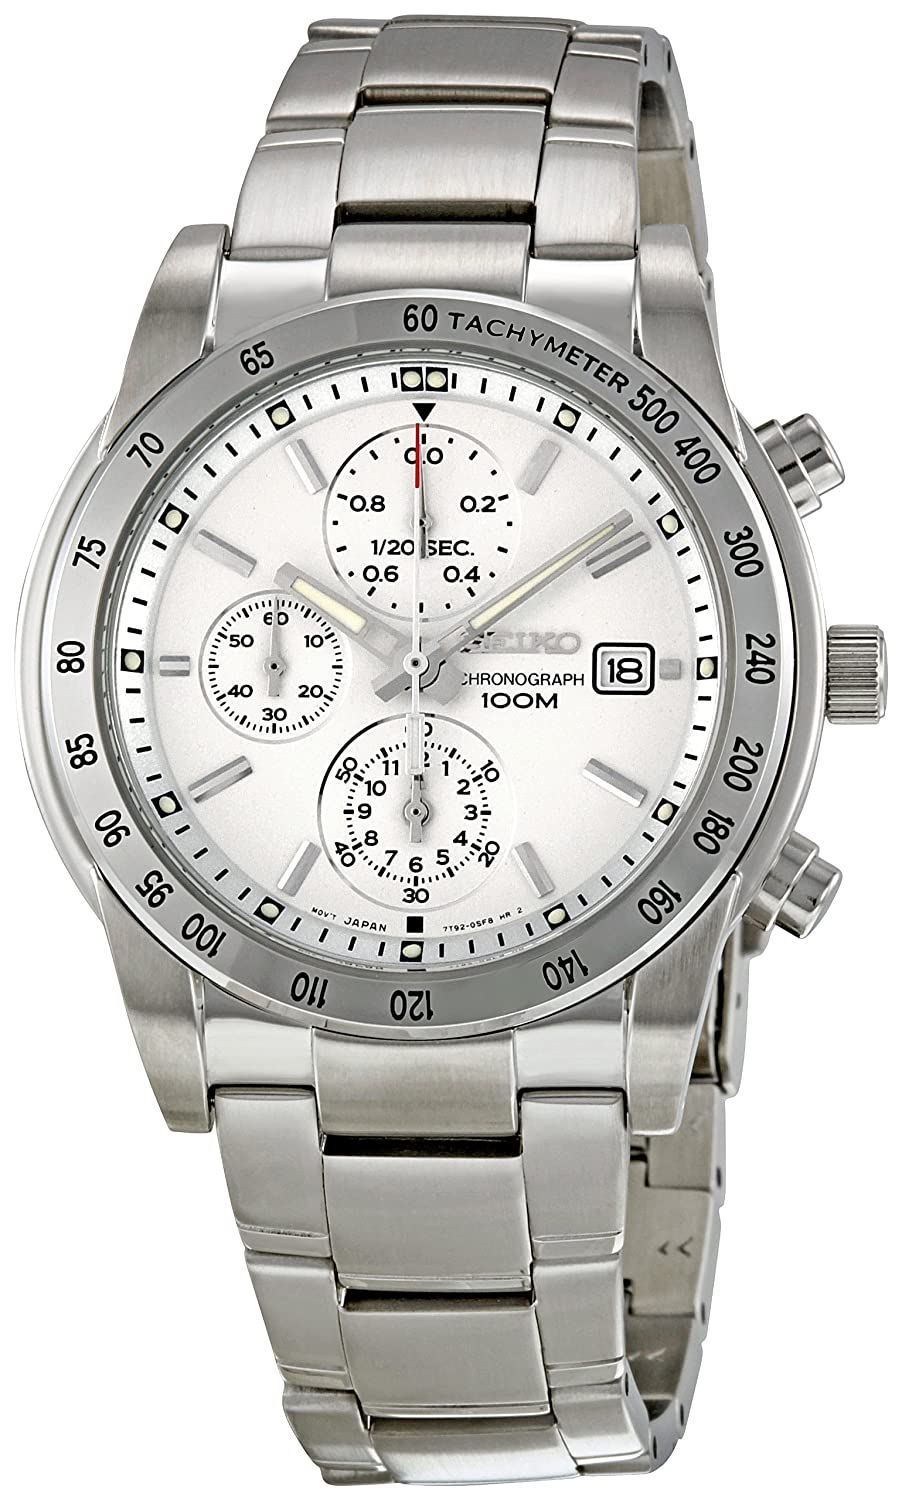 Amazon.com: Seiko Men's SNDD03 Stainless Steel Bracelet Watch: Seiko:  Watches